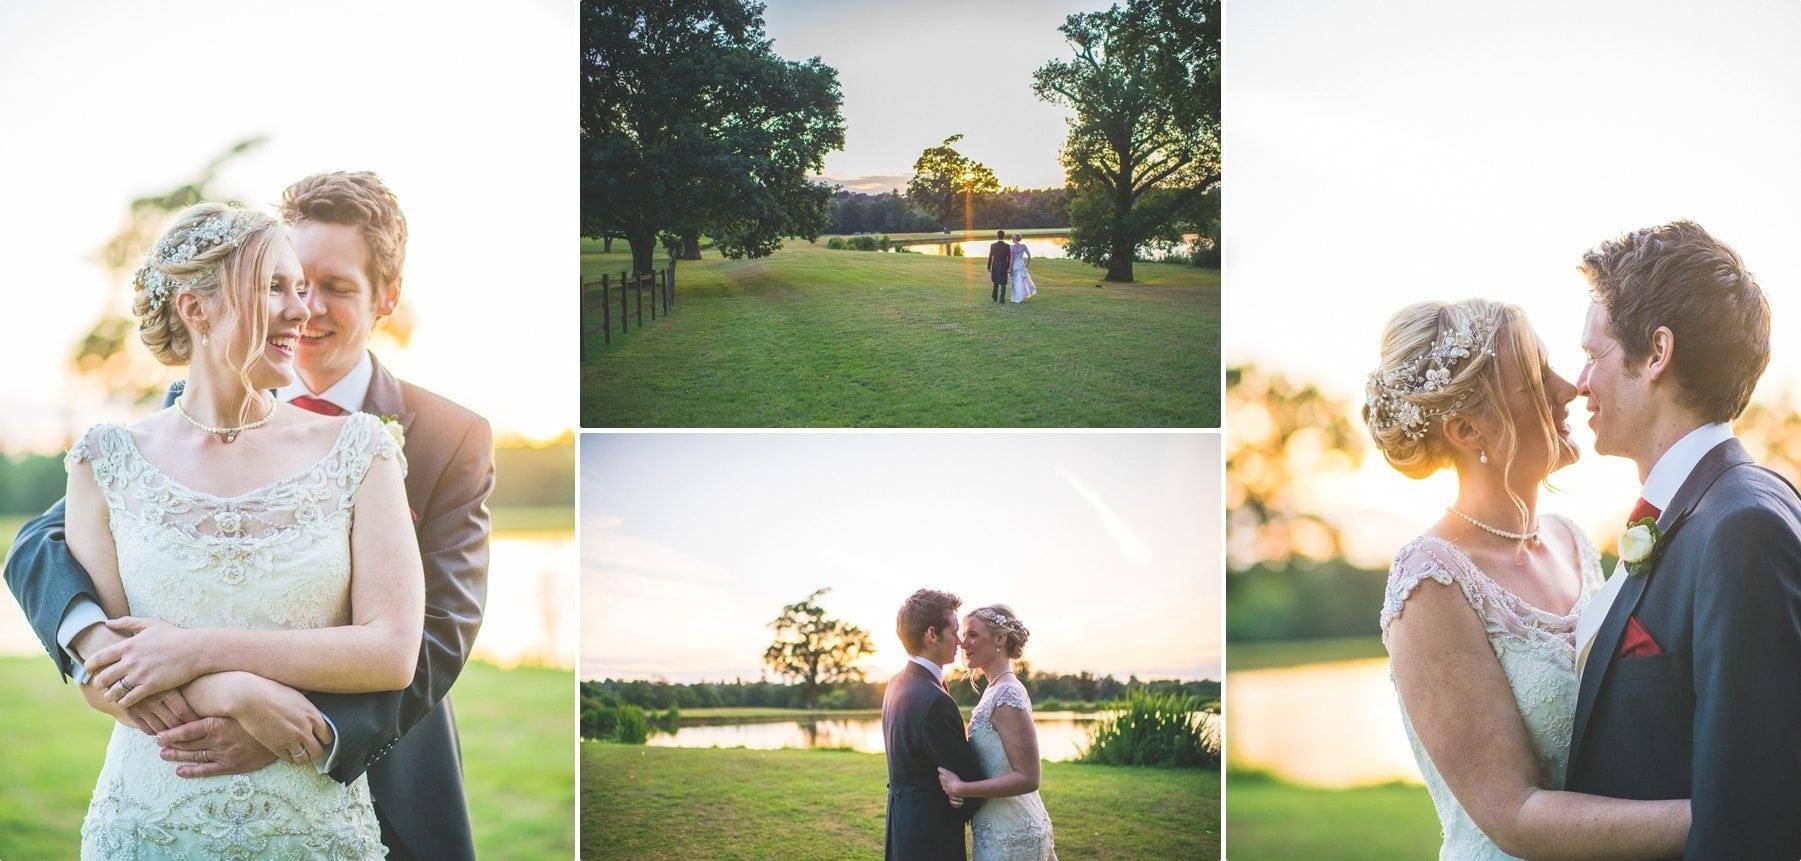 Coworth Park lake at sunset is the perfect couple shoot location for a summer wedding bride and groom